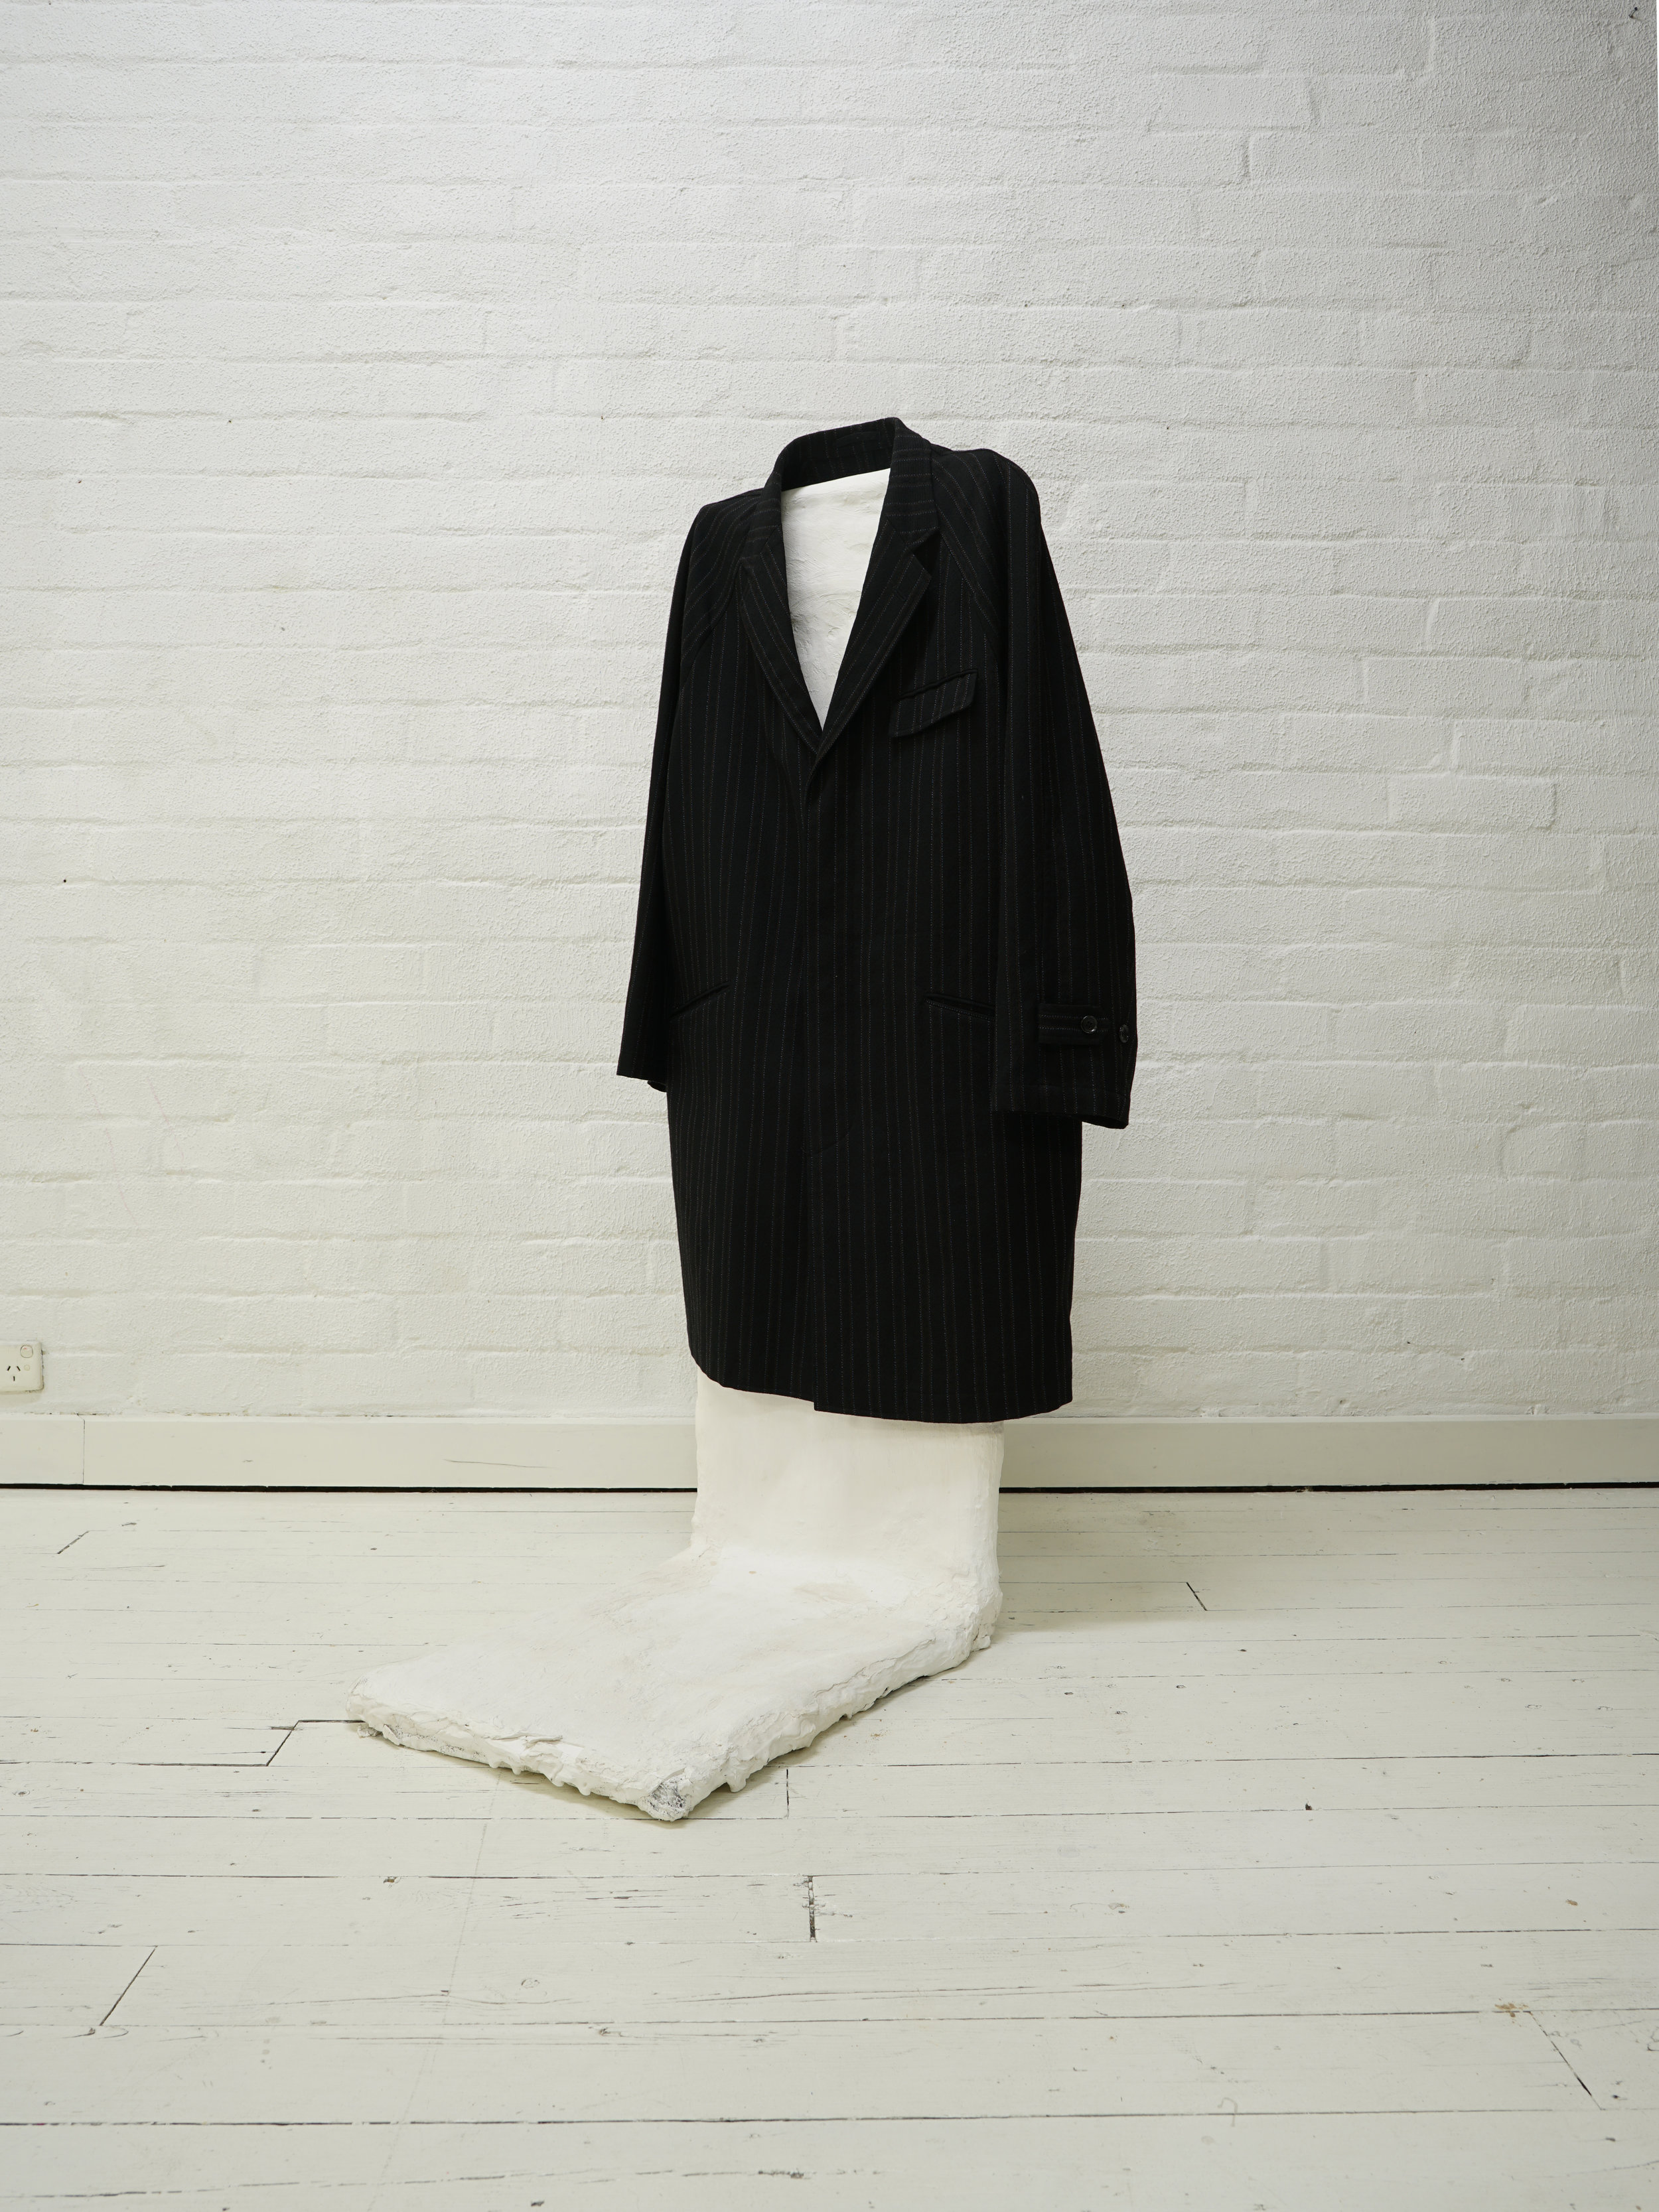 comme des garçons homme plus 1998 unlined covered placket coat  from the filter store collection